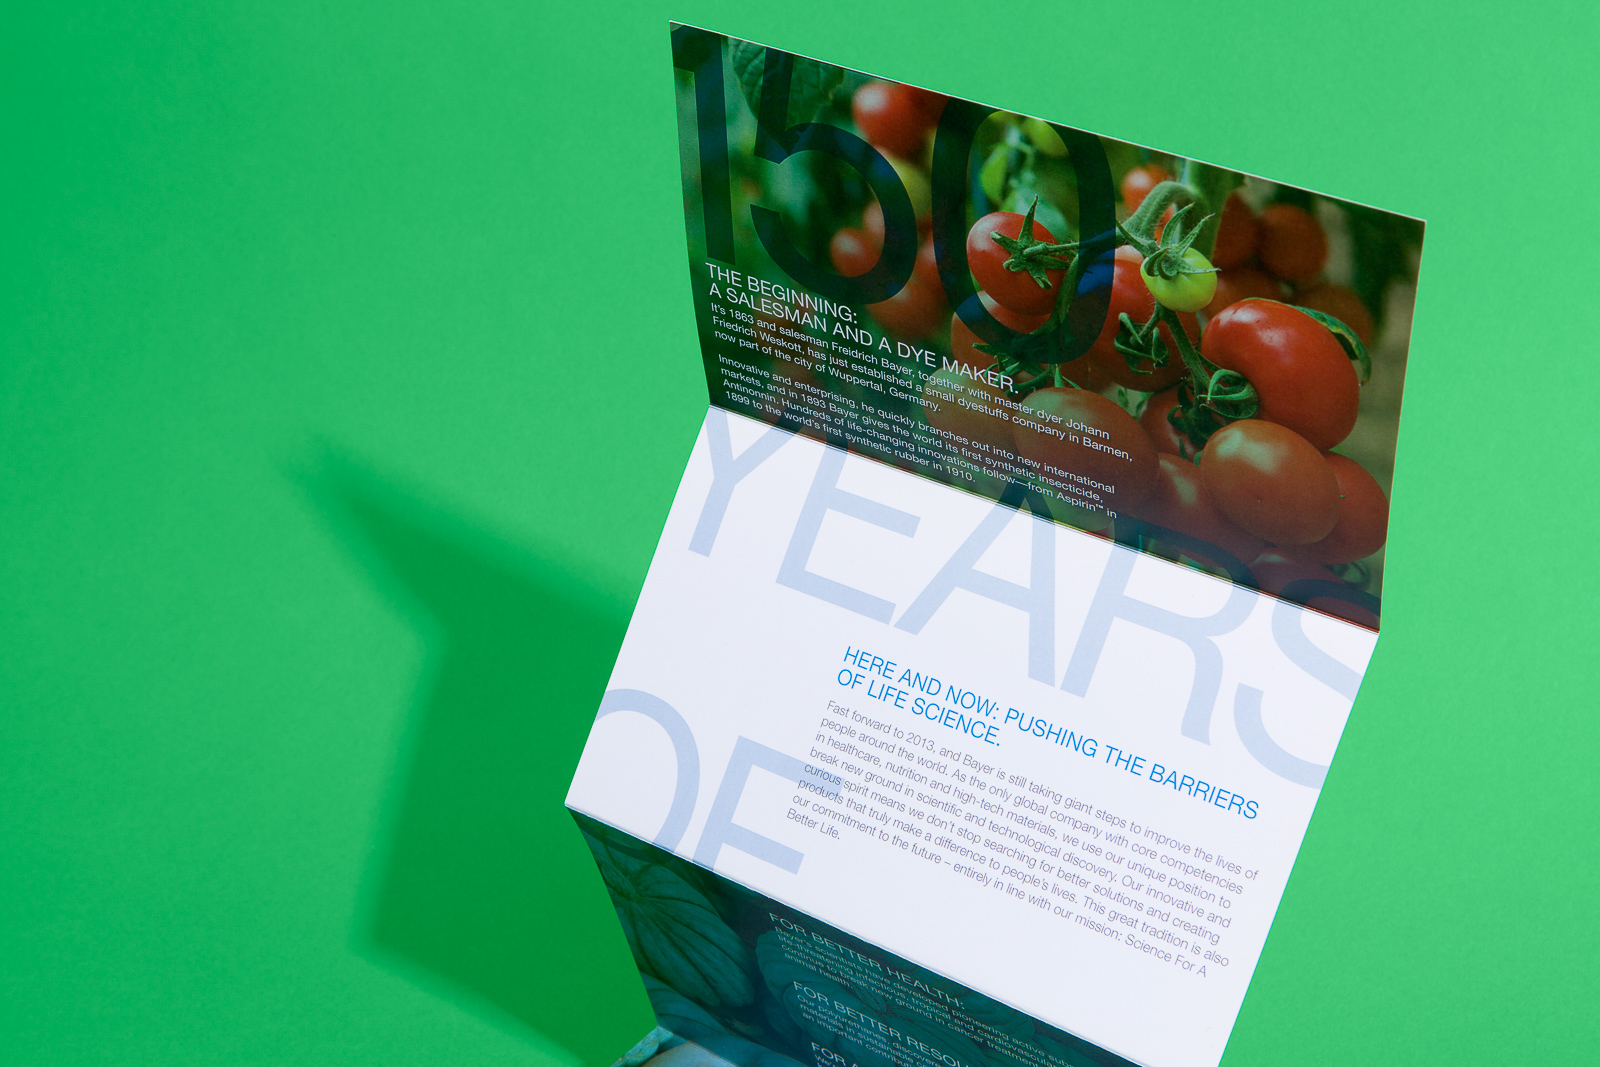 Tomato Wuppertal Bayer 150 Years On Behance